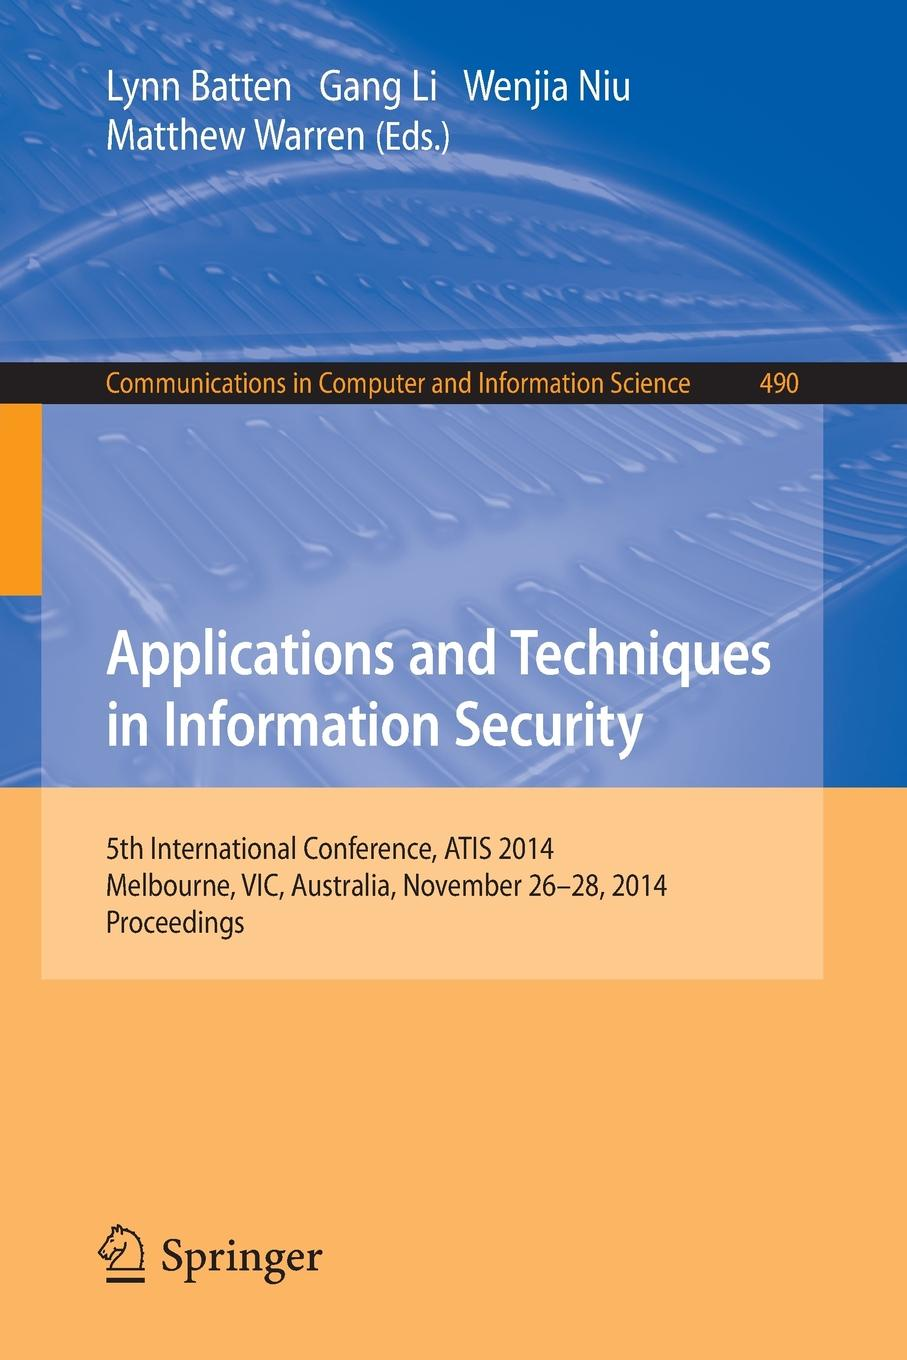 Applications and Techniques in Information Security. International Conference, ATIS 2014, Melbourne, Australia, November 26-28, 2014. Proceedings train melbourne